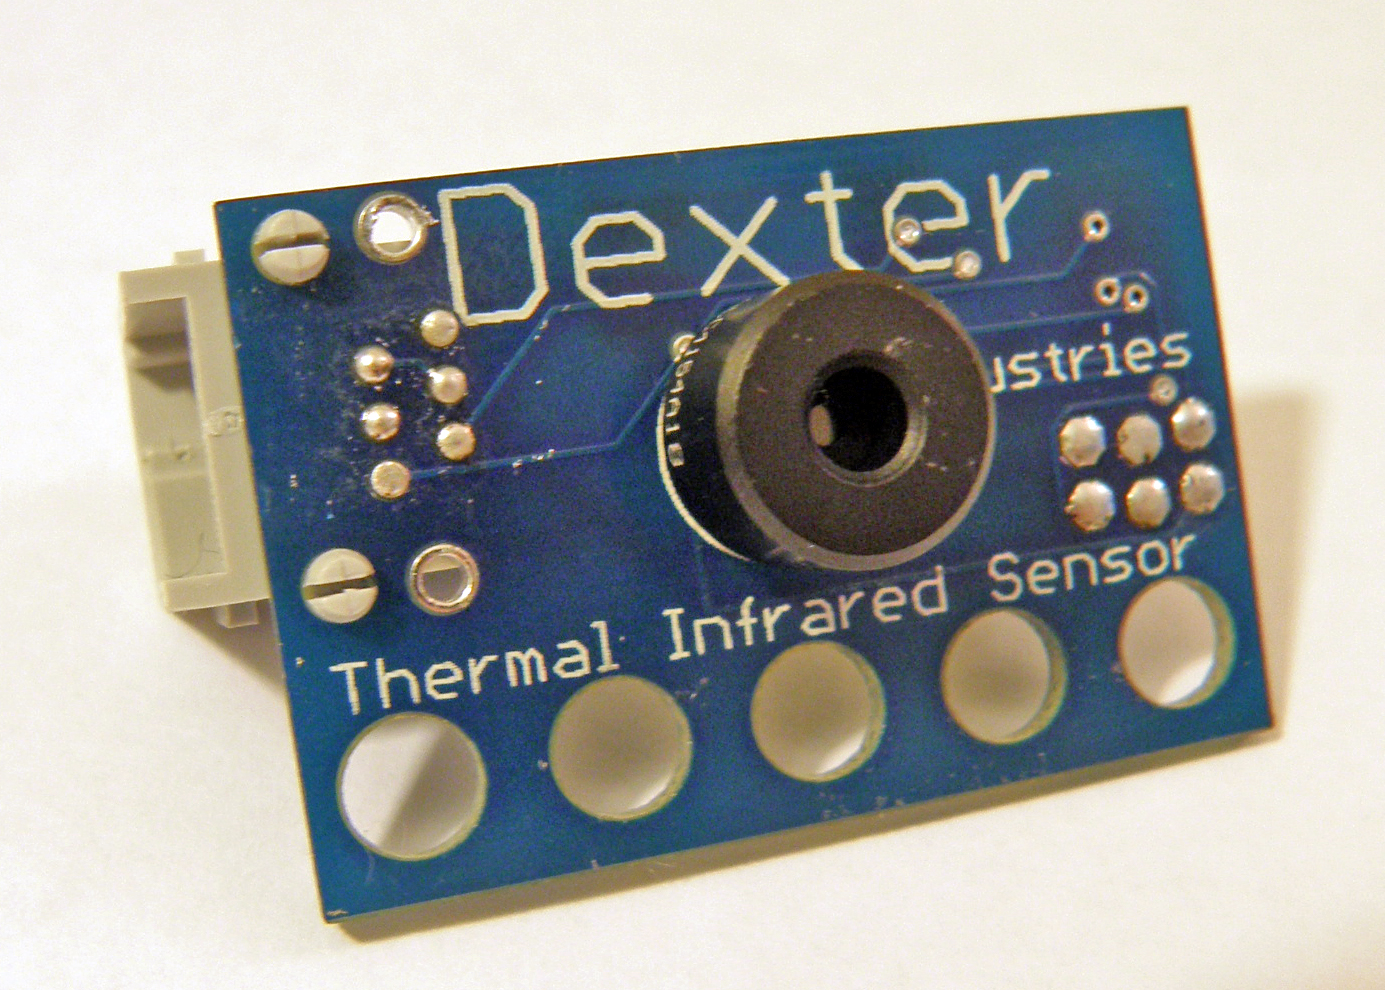 Thermal Infrared Sensor for LEGO MINDSTORMS NXT